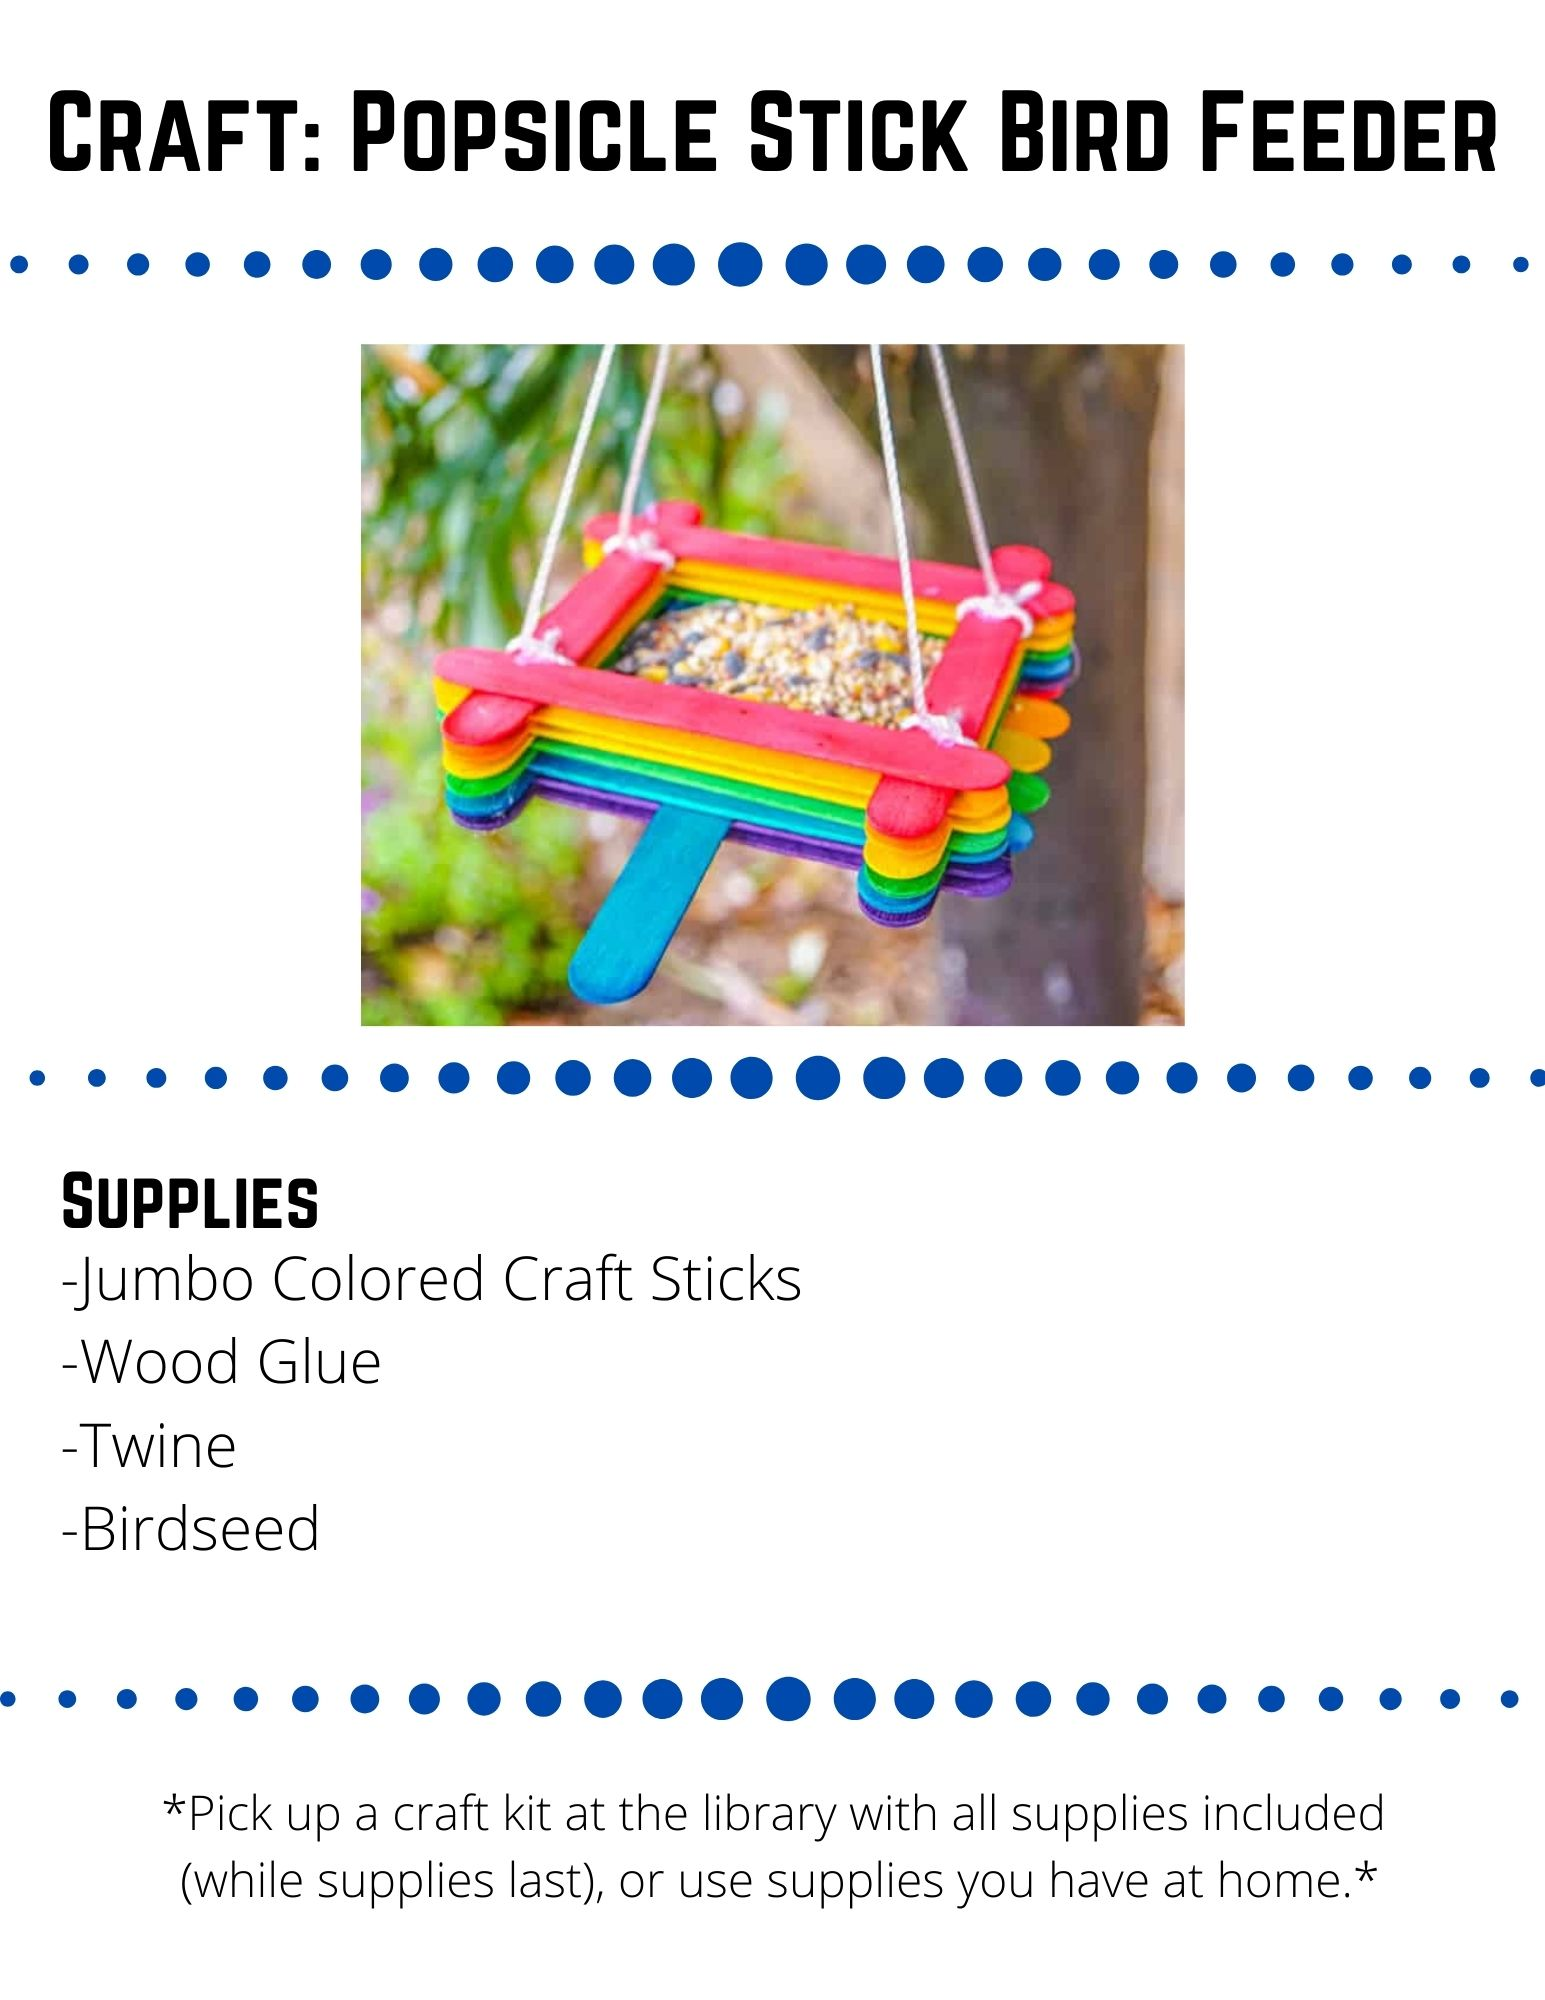 Craft: Popsicle Stick Bird Feeder. Supplies: -Jumbo Colored Craft Sticks -Wood Glue -Twine  -Birdseed. Lay six jumbo craft sticks next to each other.  This is going to be the bottom of your bird feeder. Glue two sticks across the six base sticks towards the ends of each side. This will hold your base together. Put a dot of glue in the four corners of the sticks you just glued on. Place sticks on top of these sticks the opposite direction. For the perch, add glue to the middle of one of  the last sticks  you glued on. Glue a stick in the opposite direction of this stick. Continue gluing sticks around the outside--two in one direction and then two on top in the other direction. (If you want a rainbow effect, change colors after every 4 craft sticks). After around 6 sets of 4 sticks glued, you are finished gluing.  Let the glue dry for 24 hours to make sure it is set. Cut your twine into four pieces, each about 2 feet long. Tie each piece of twine to the corner of the craft stick feeder one level down. This will distribute the weight of the filled bird feeder from the top sticks.  Tie all of the ends of the twine together. Create a simple loop by not pulling the ends through the knot fully. Fill your feeder with bird seed and hang it outside.